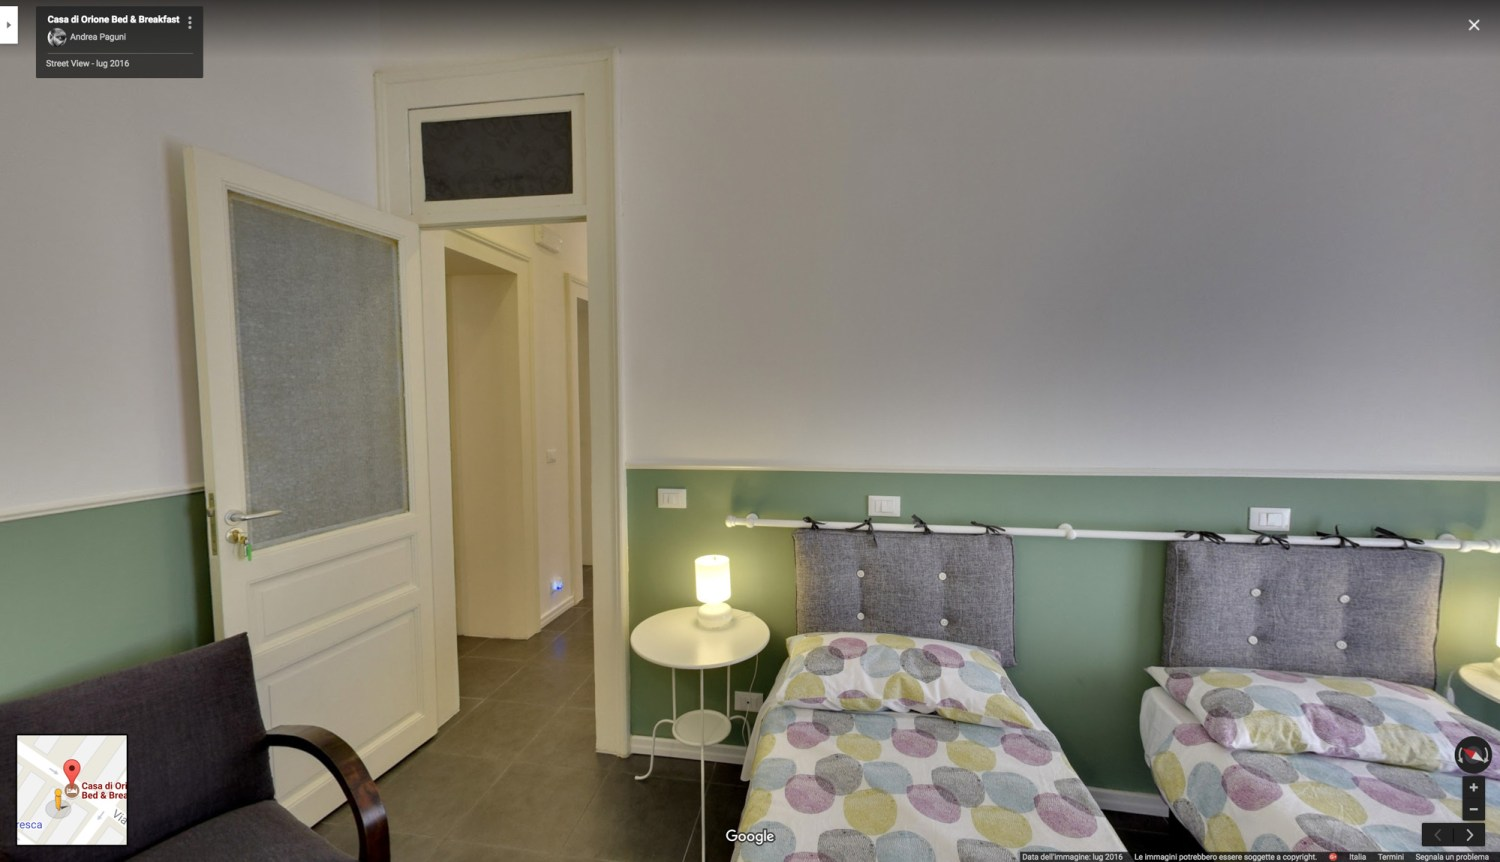 Casa di Orione Bed & Breakfast